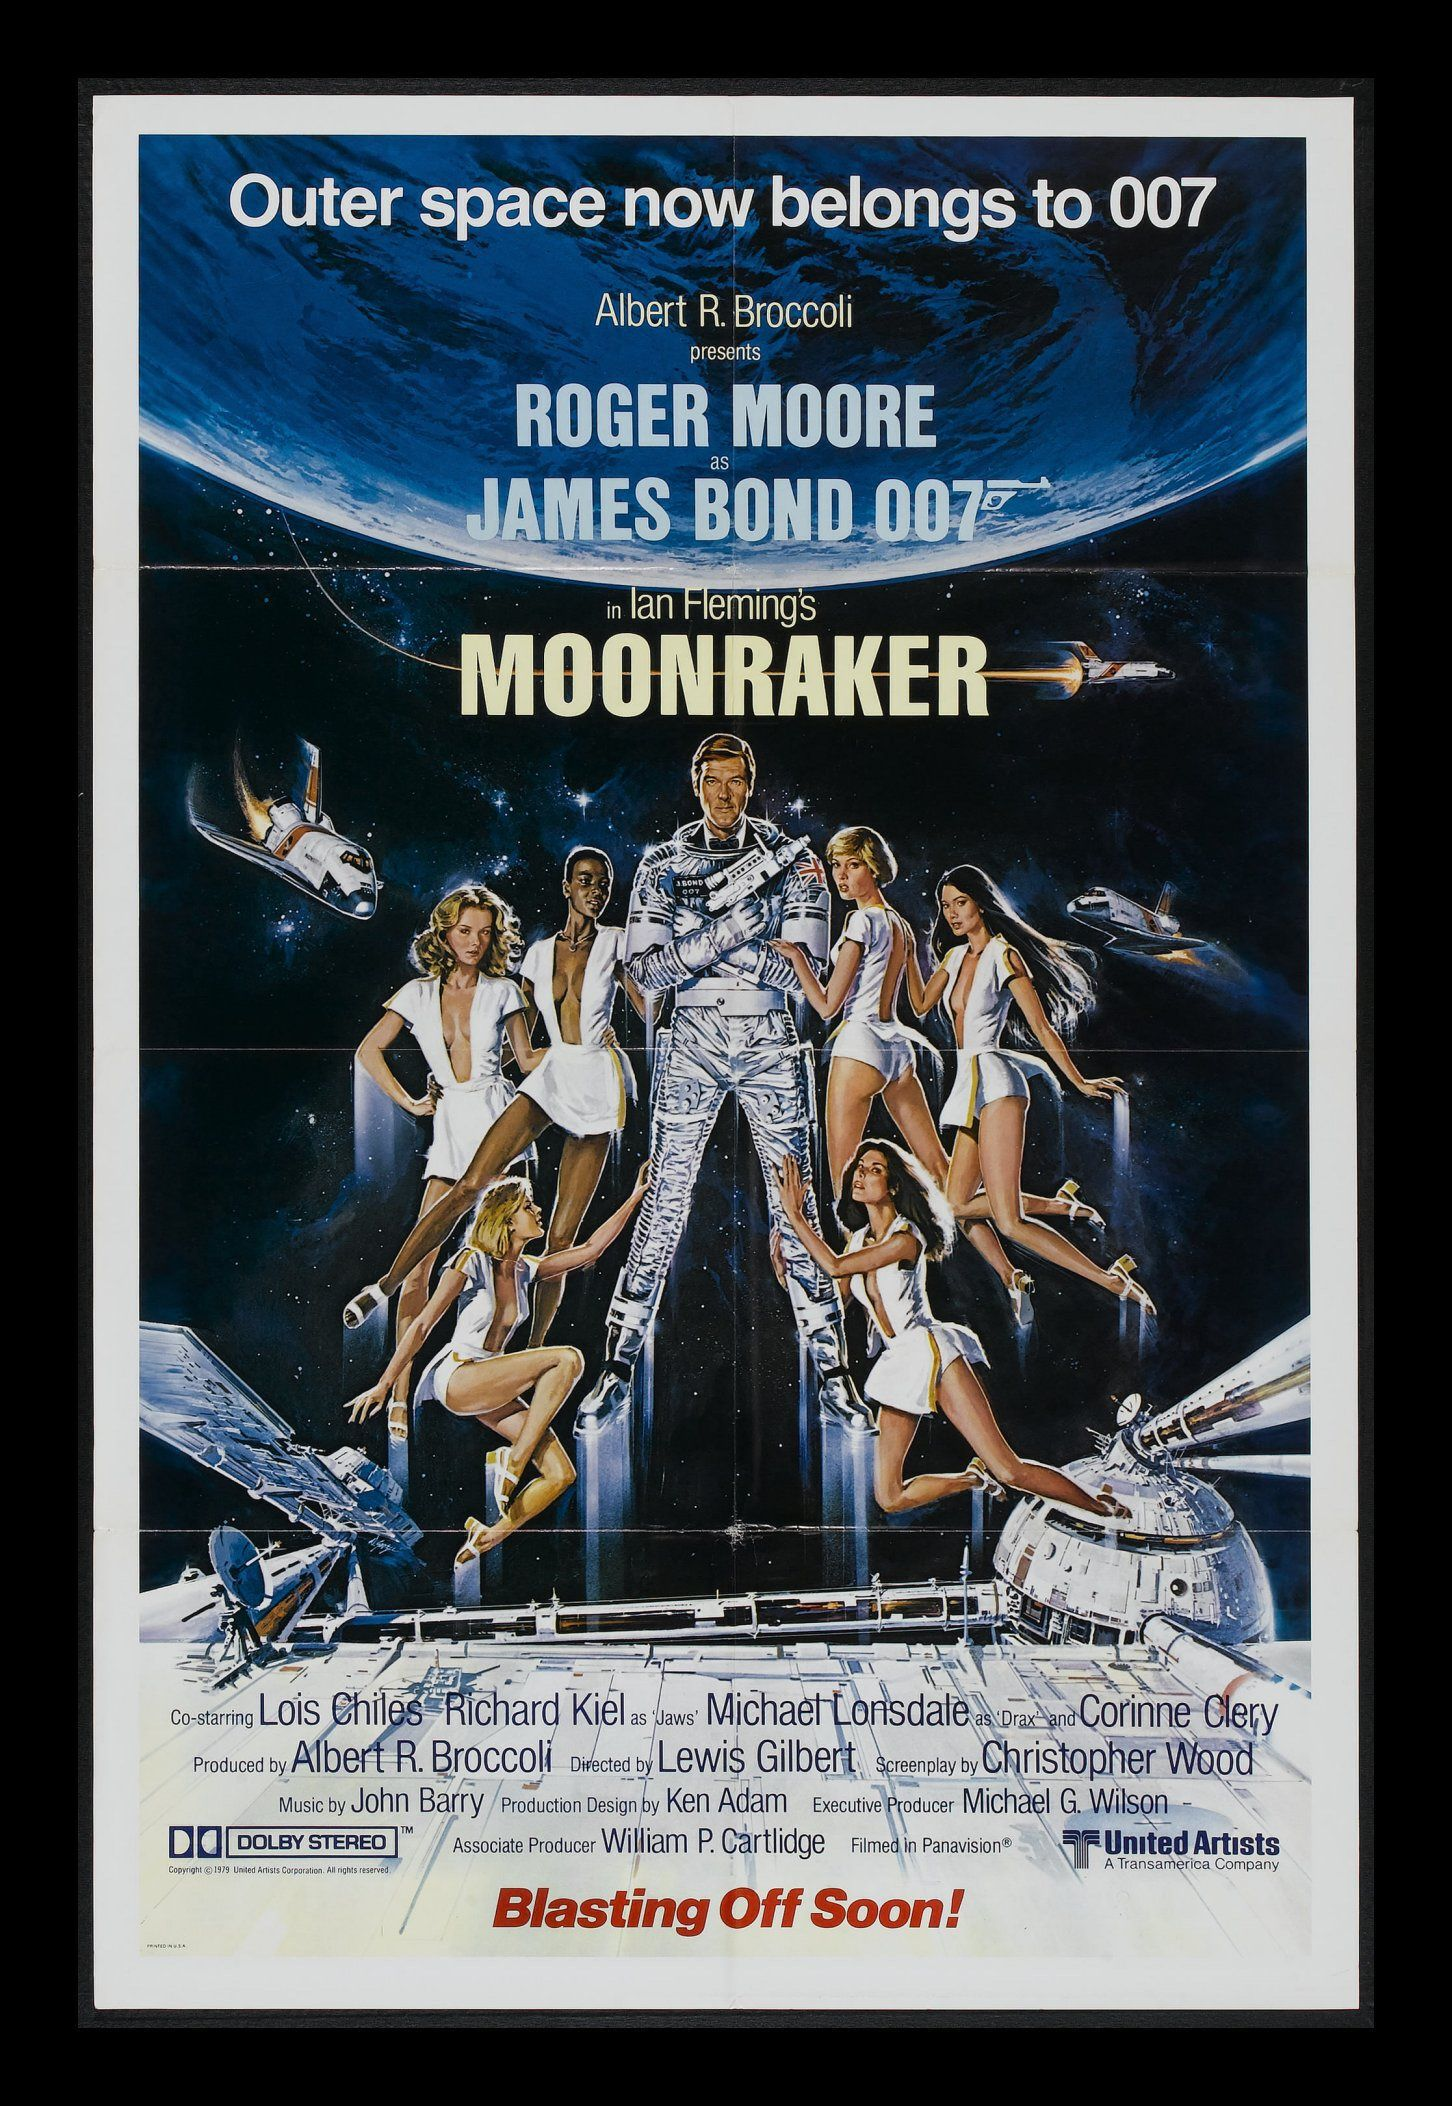 An Alternate Version Of The Us Poster Of Moonraker Shows A More